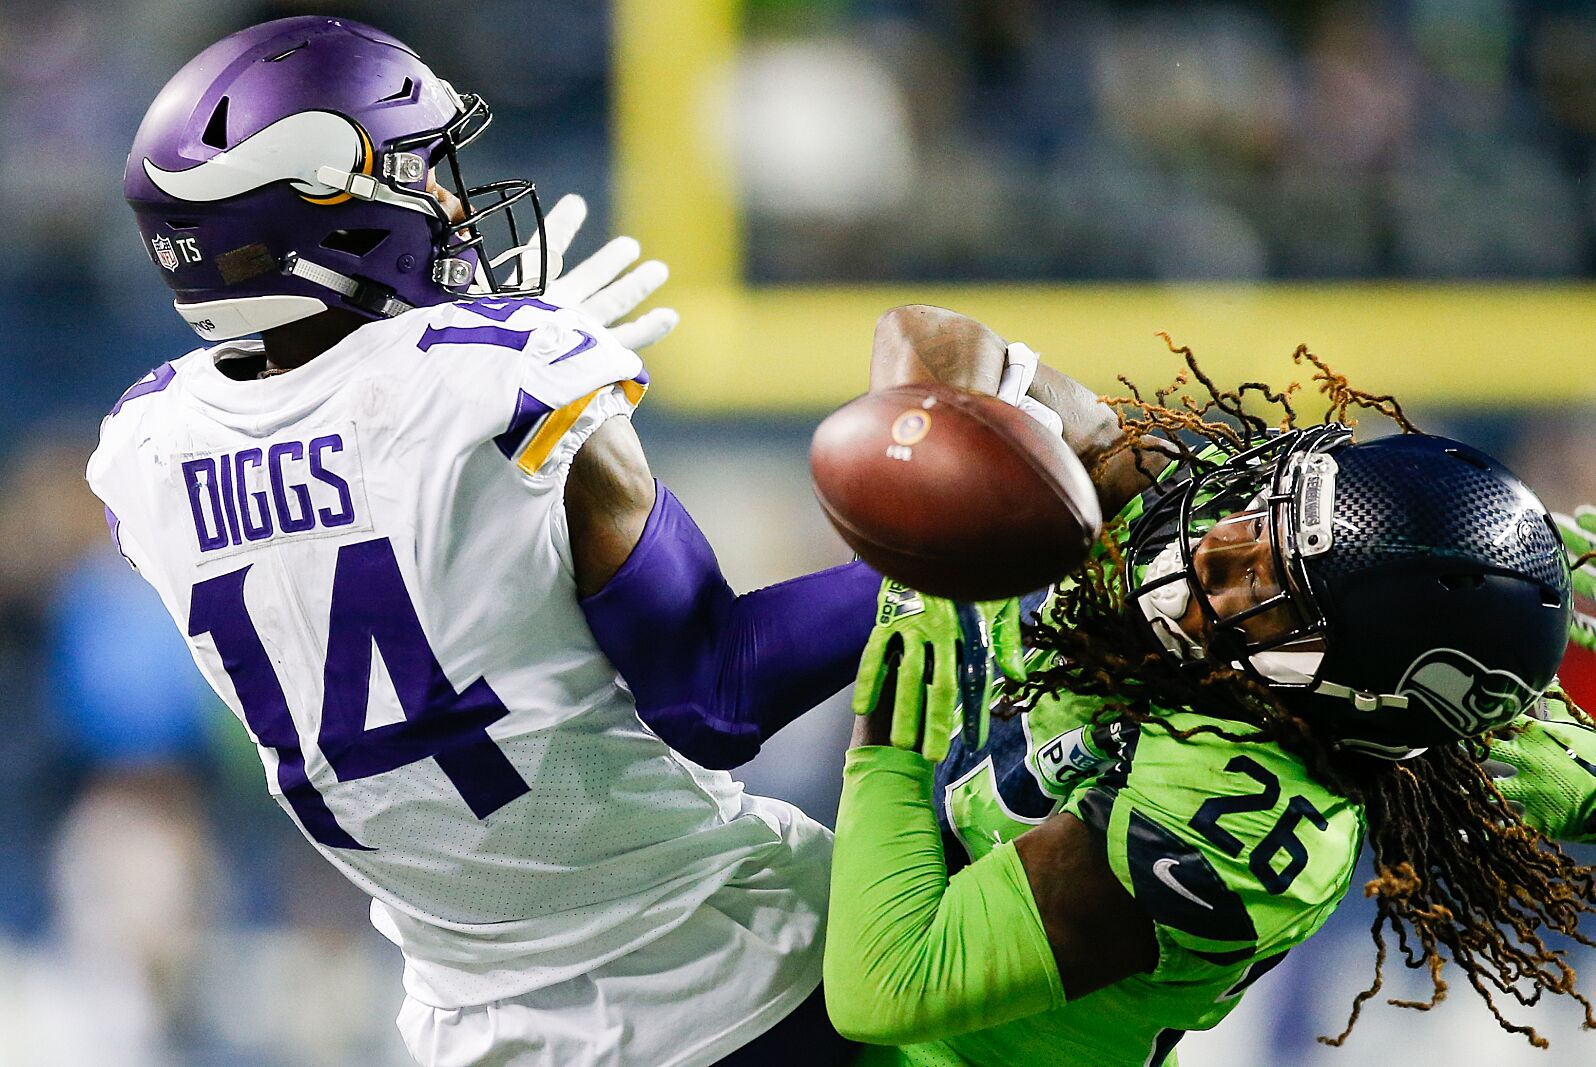 044a5a322 SEATTLE, WA – DECEMBER 10: Shaquill Griffin #26 of the Seattle Seahawks  breaks up a catch by Stefon Diggs #14 of the Minnesota Vikings in the  fourth quarter ...